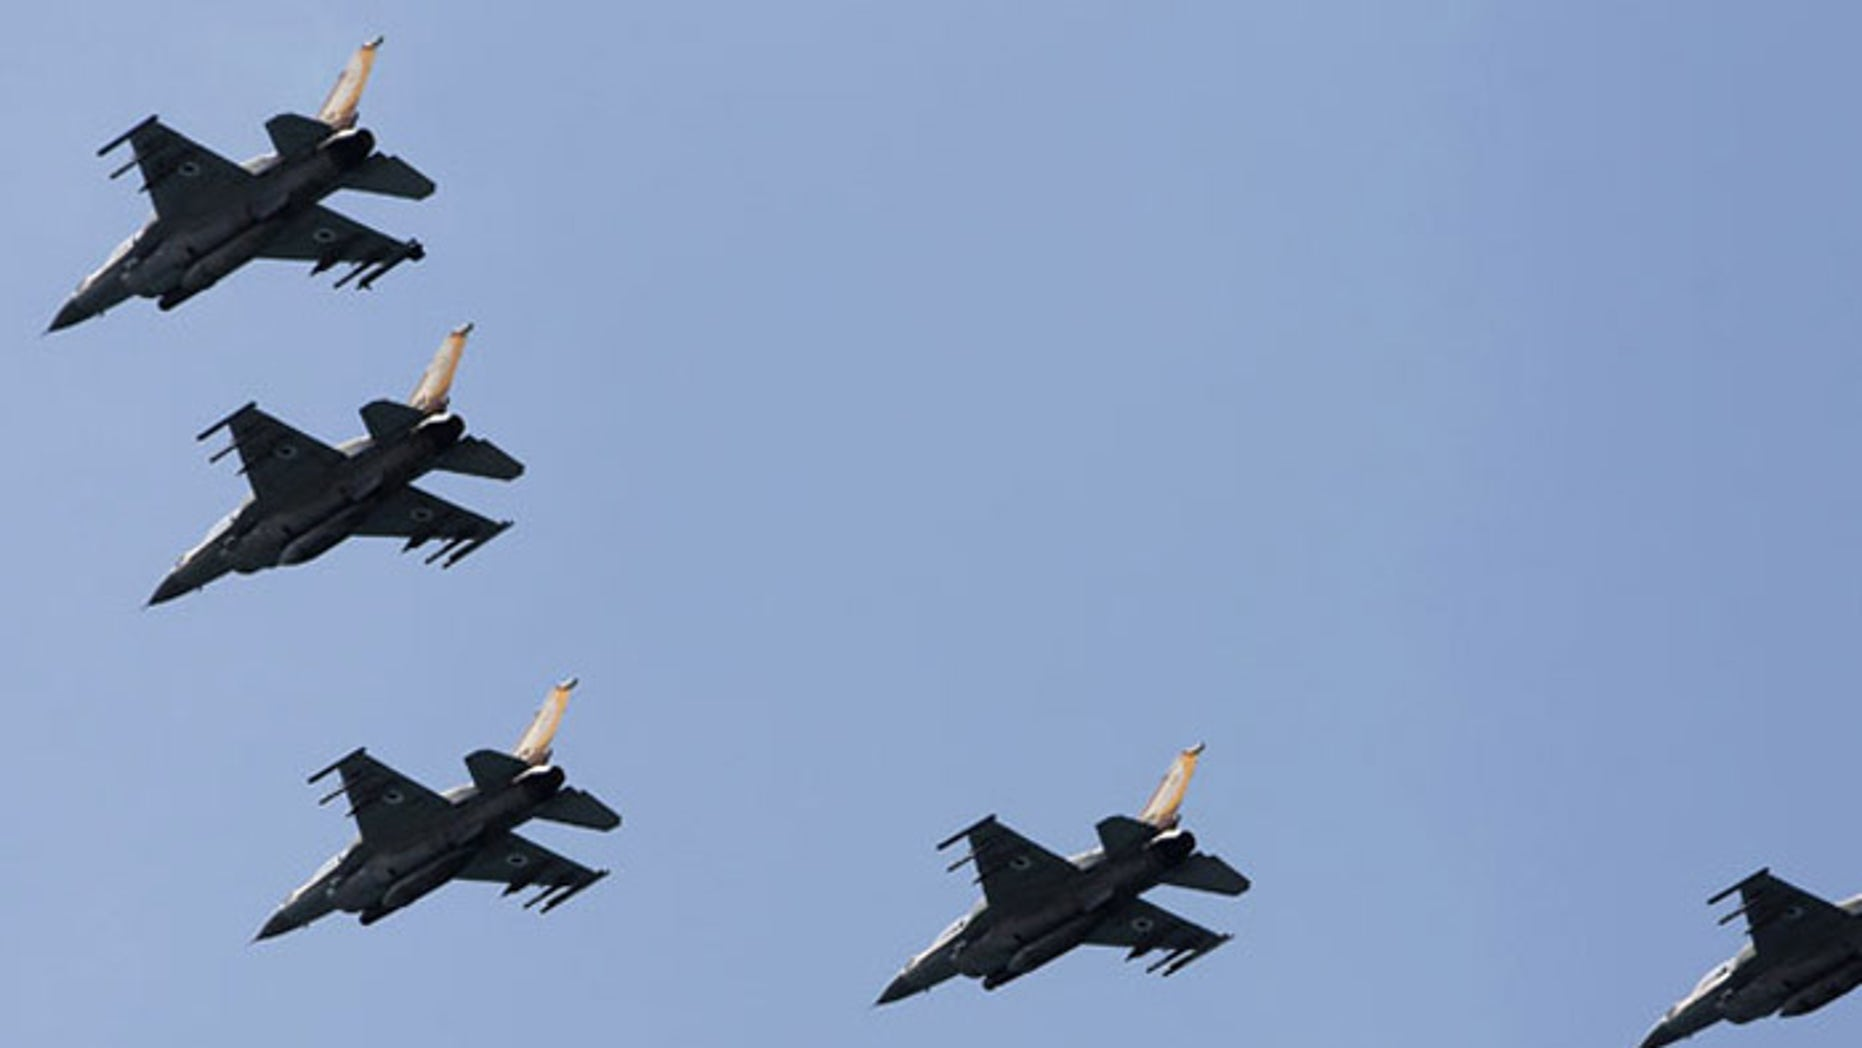 Less than an hour after Lebanese media reported Israeli Air Force jets flying overhead, explosions were heard in a coastal Syrian town where Russian-made missile batteries are deployed. (Reuters)